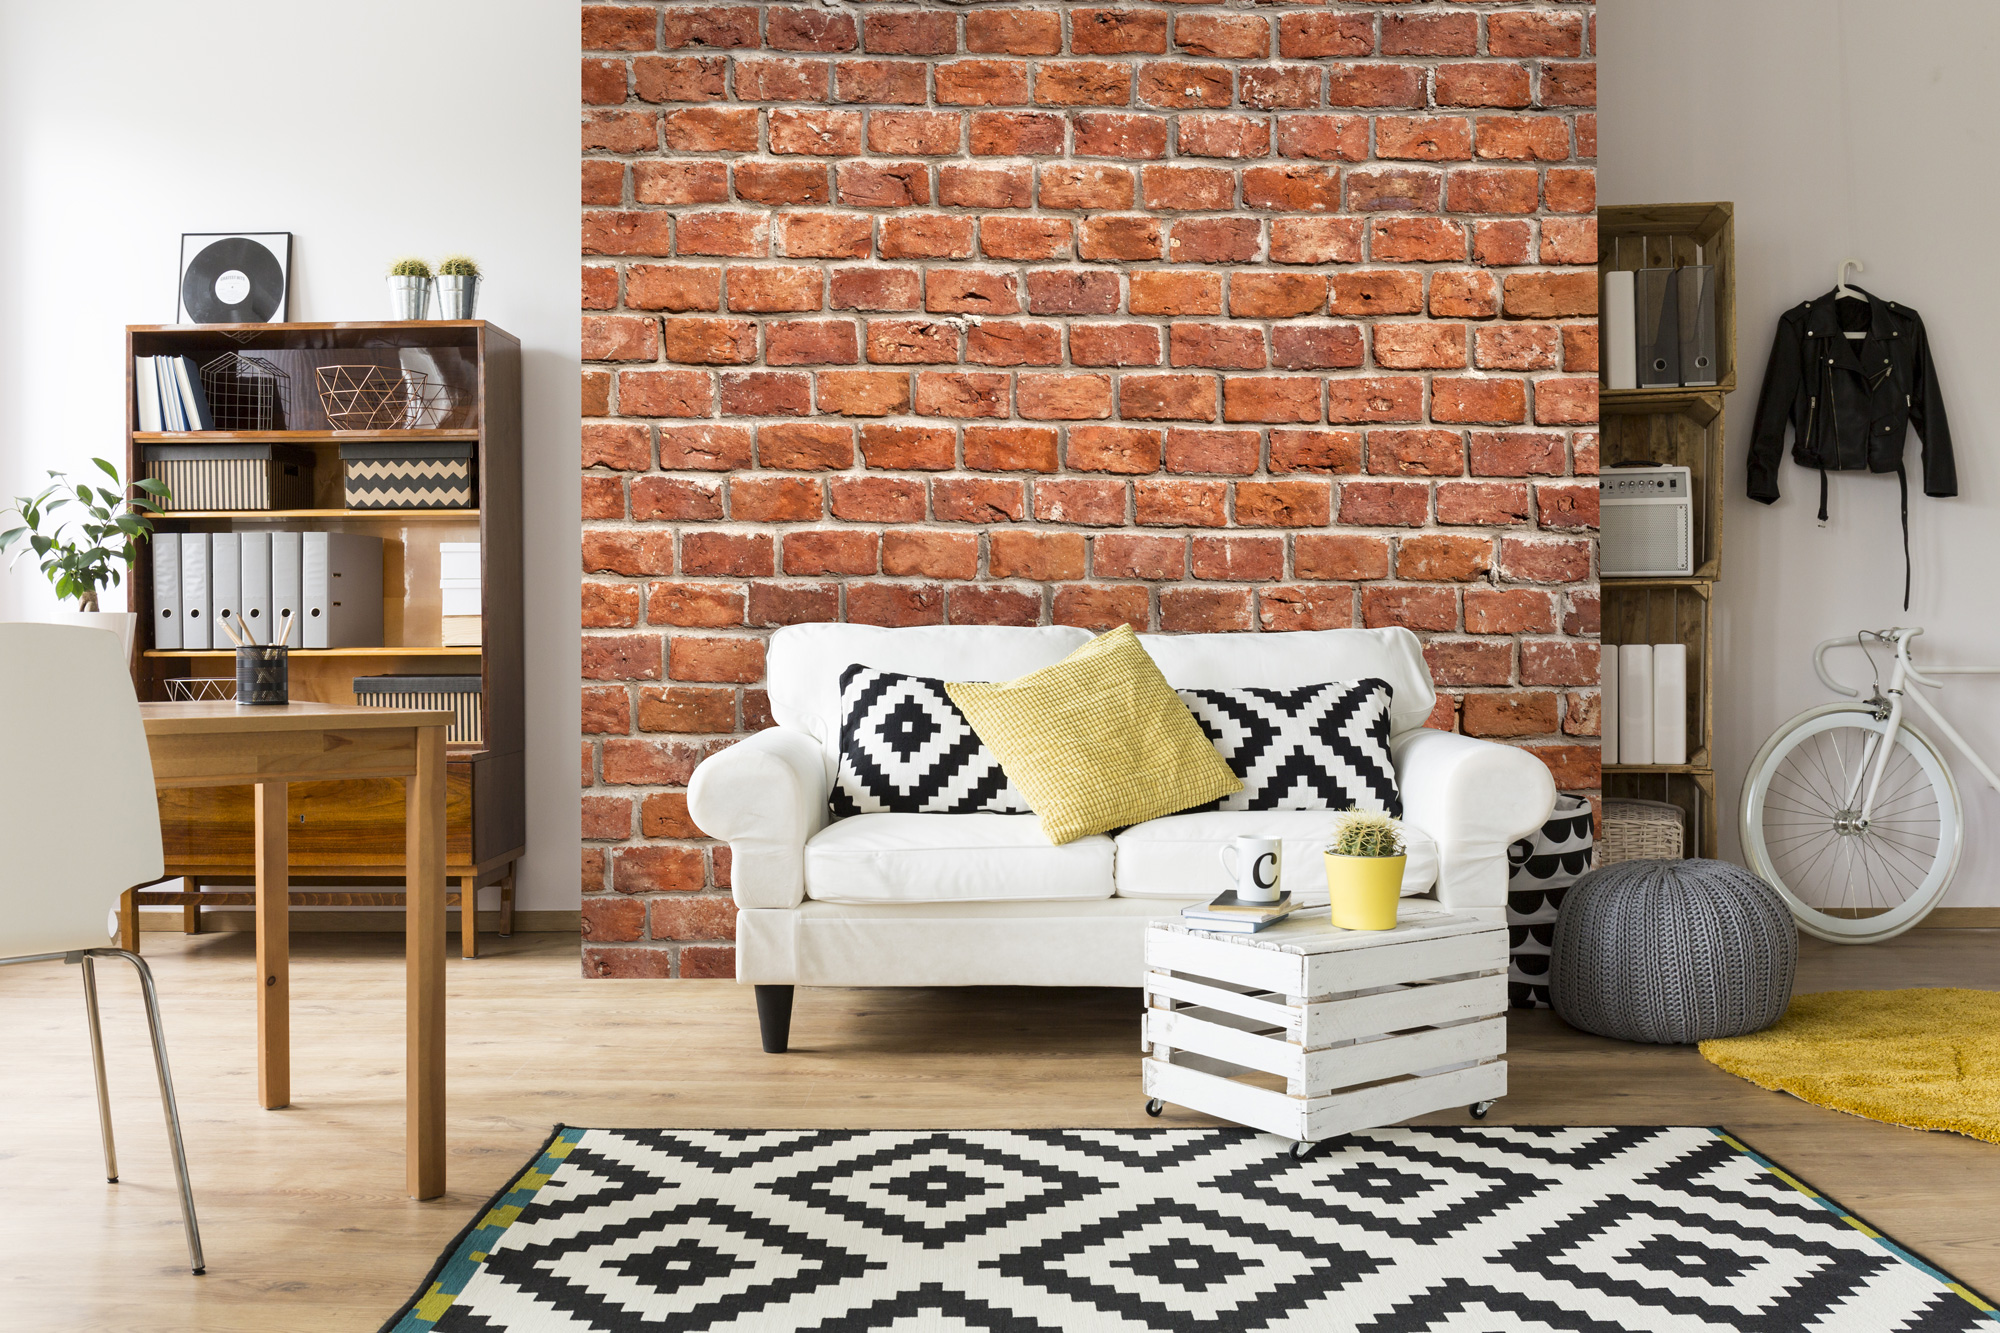 Feature wallpaper: Brick wallpaper, old brick